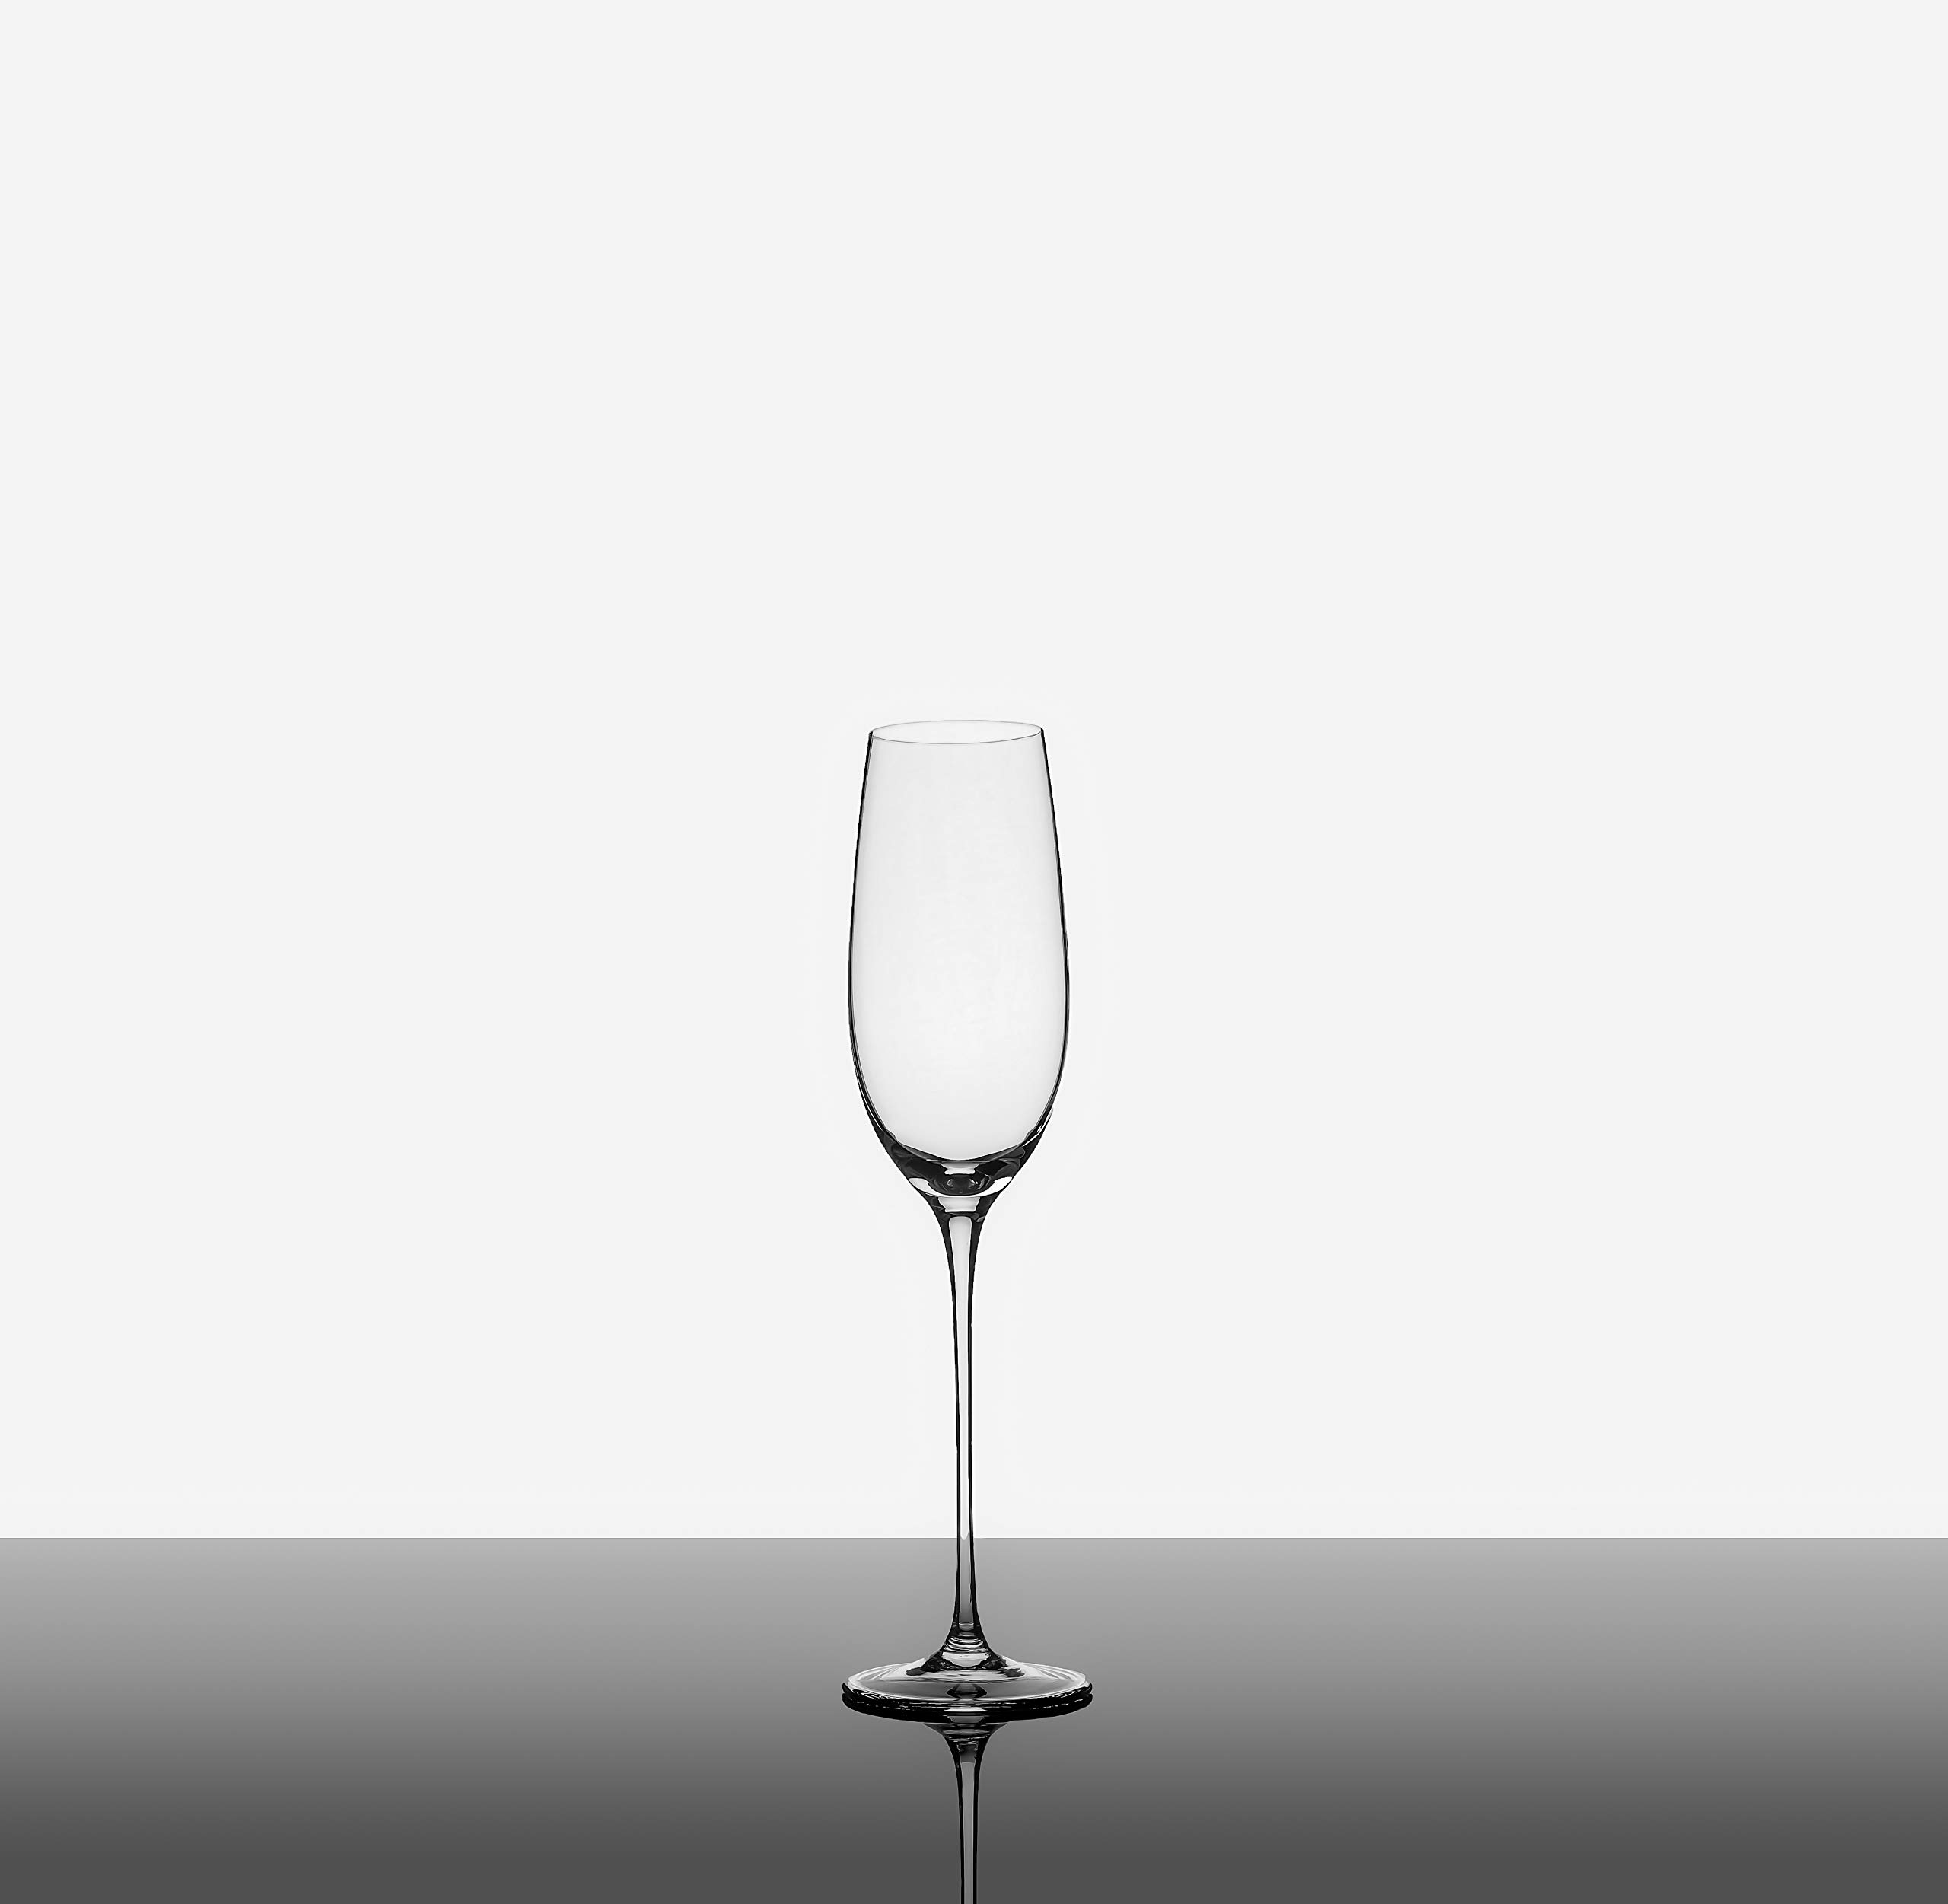 The Excelsior by DUX - Handmade, 100% Lead-Free, Crystal Champagne Flutes, Set of 2 Glasses, Elegant Gift Box by DUX (Image #8)